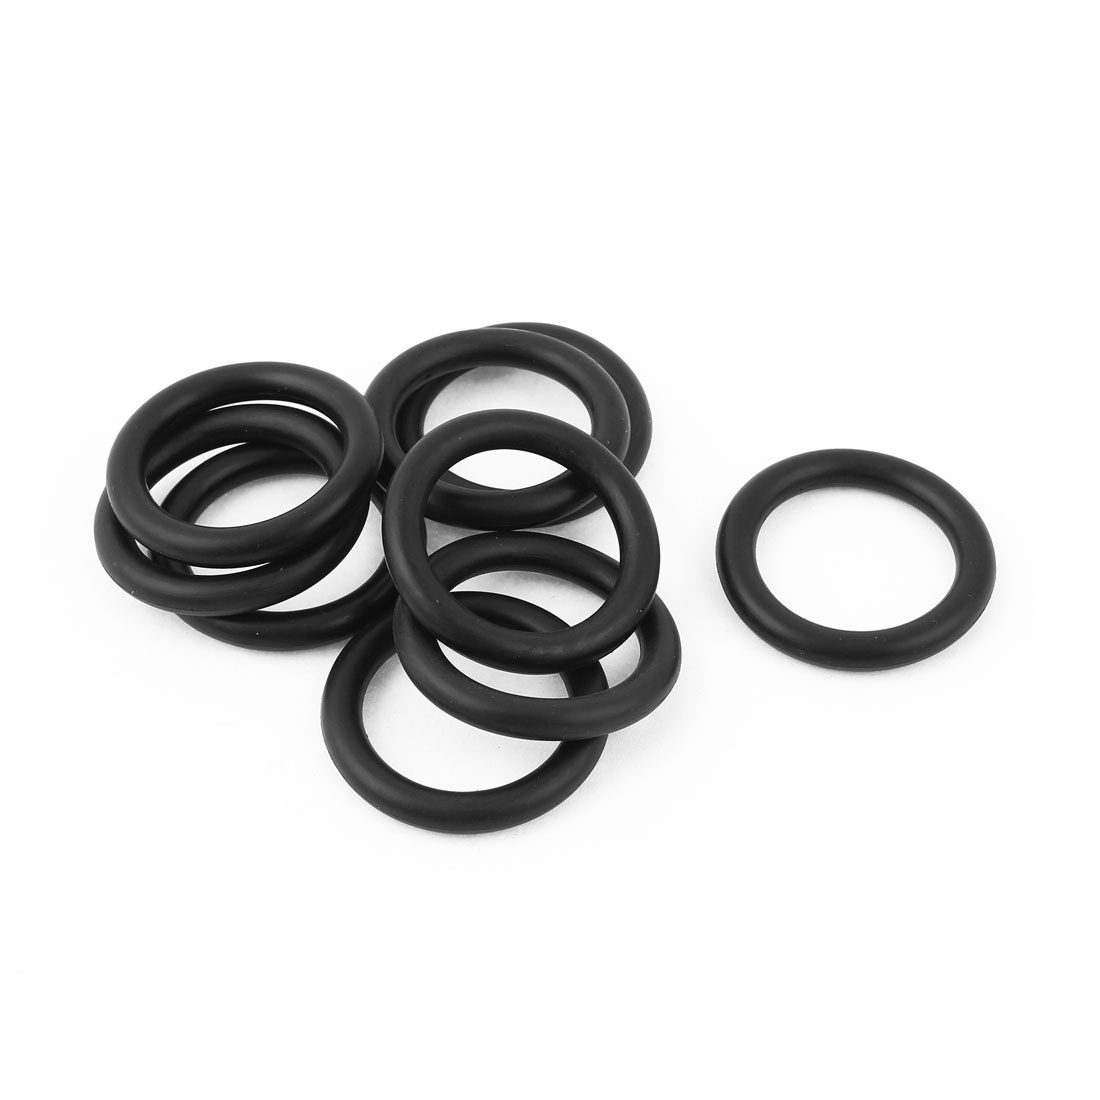 10pcs Rubber Oil Drain Shift Shaft Filter Seal Ring Black